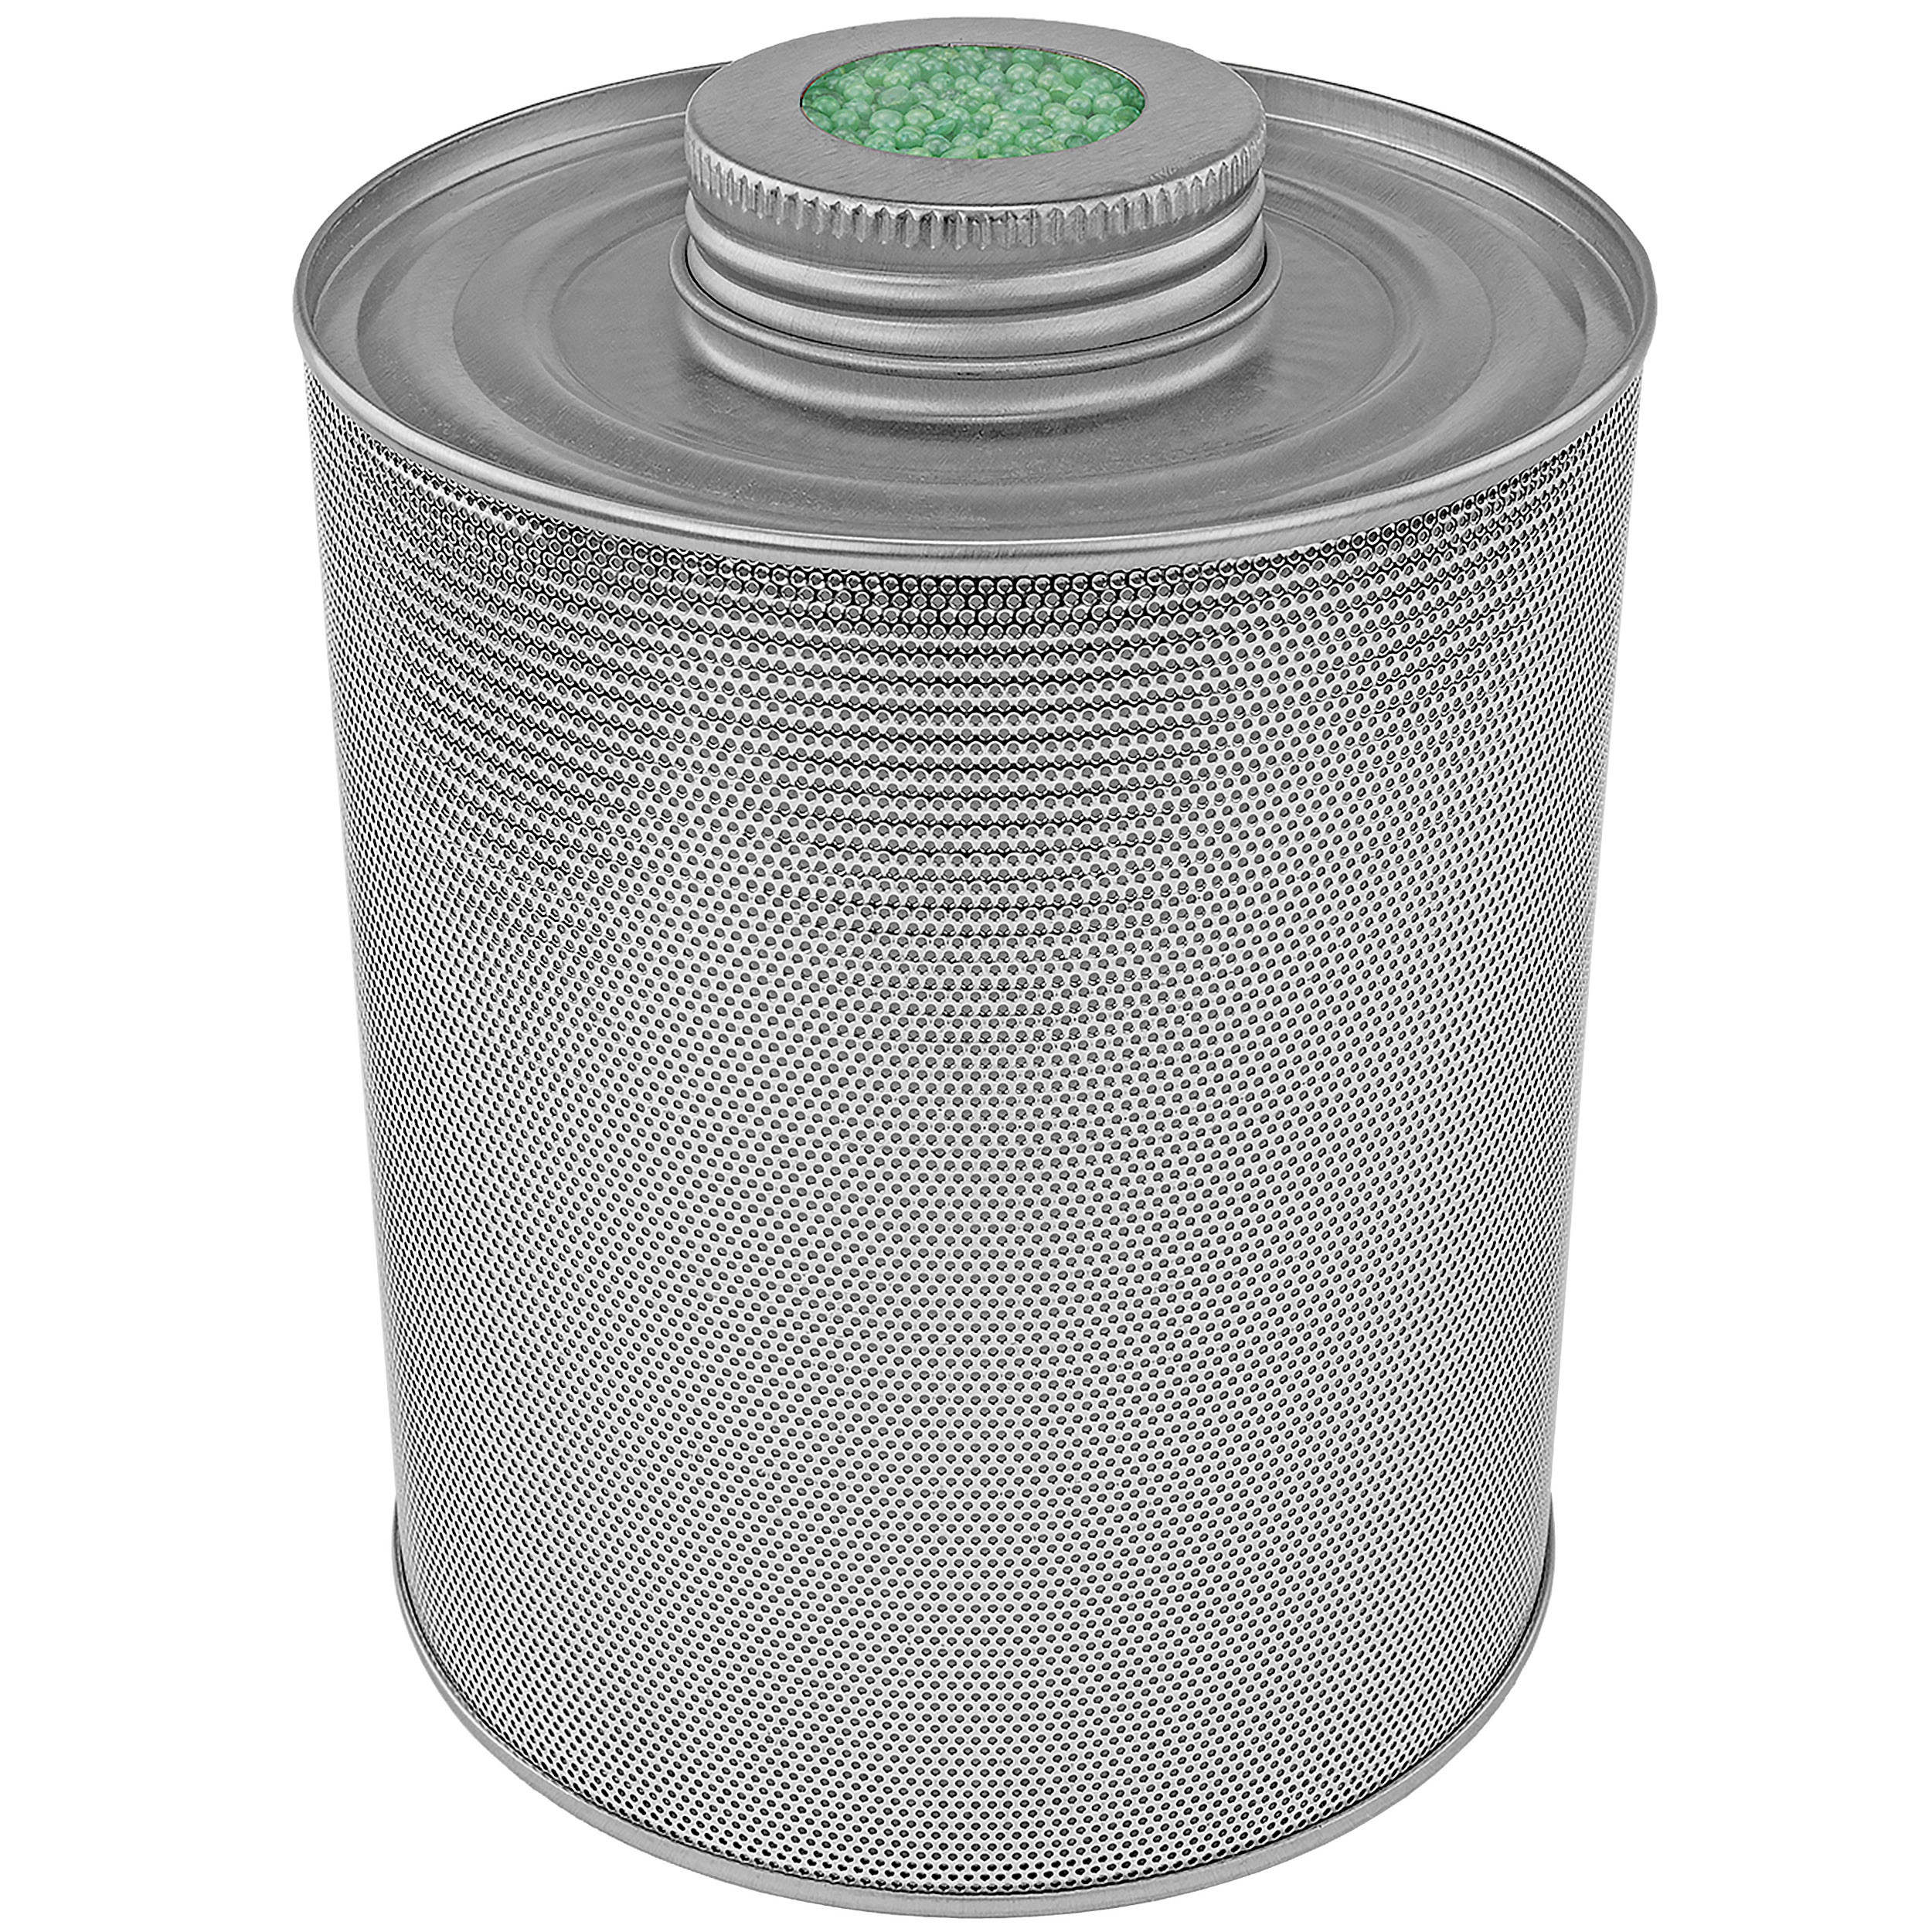 Aroma Dri 750gm Apple Scented Silica Gel Steel Canister